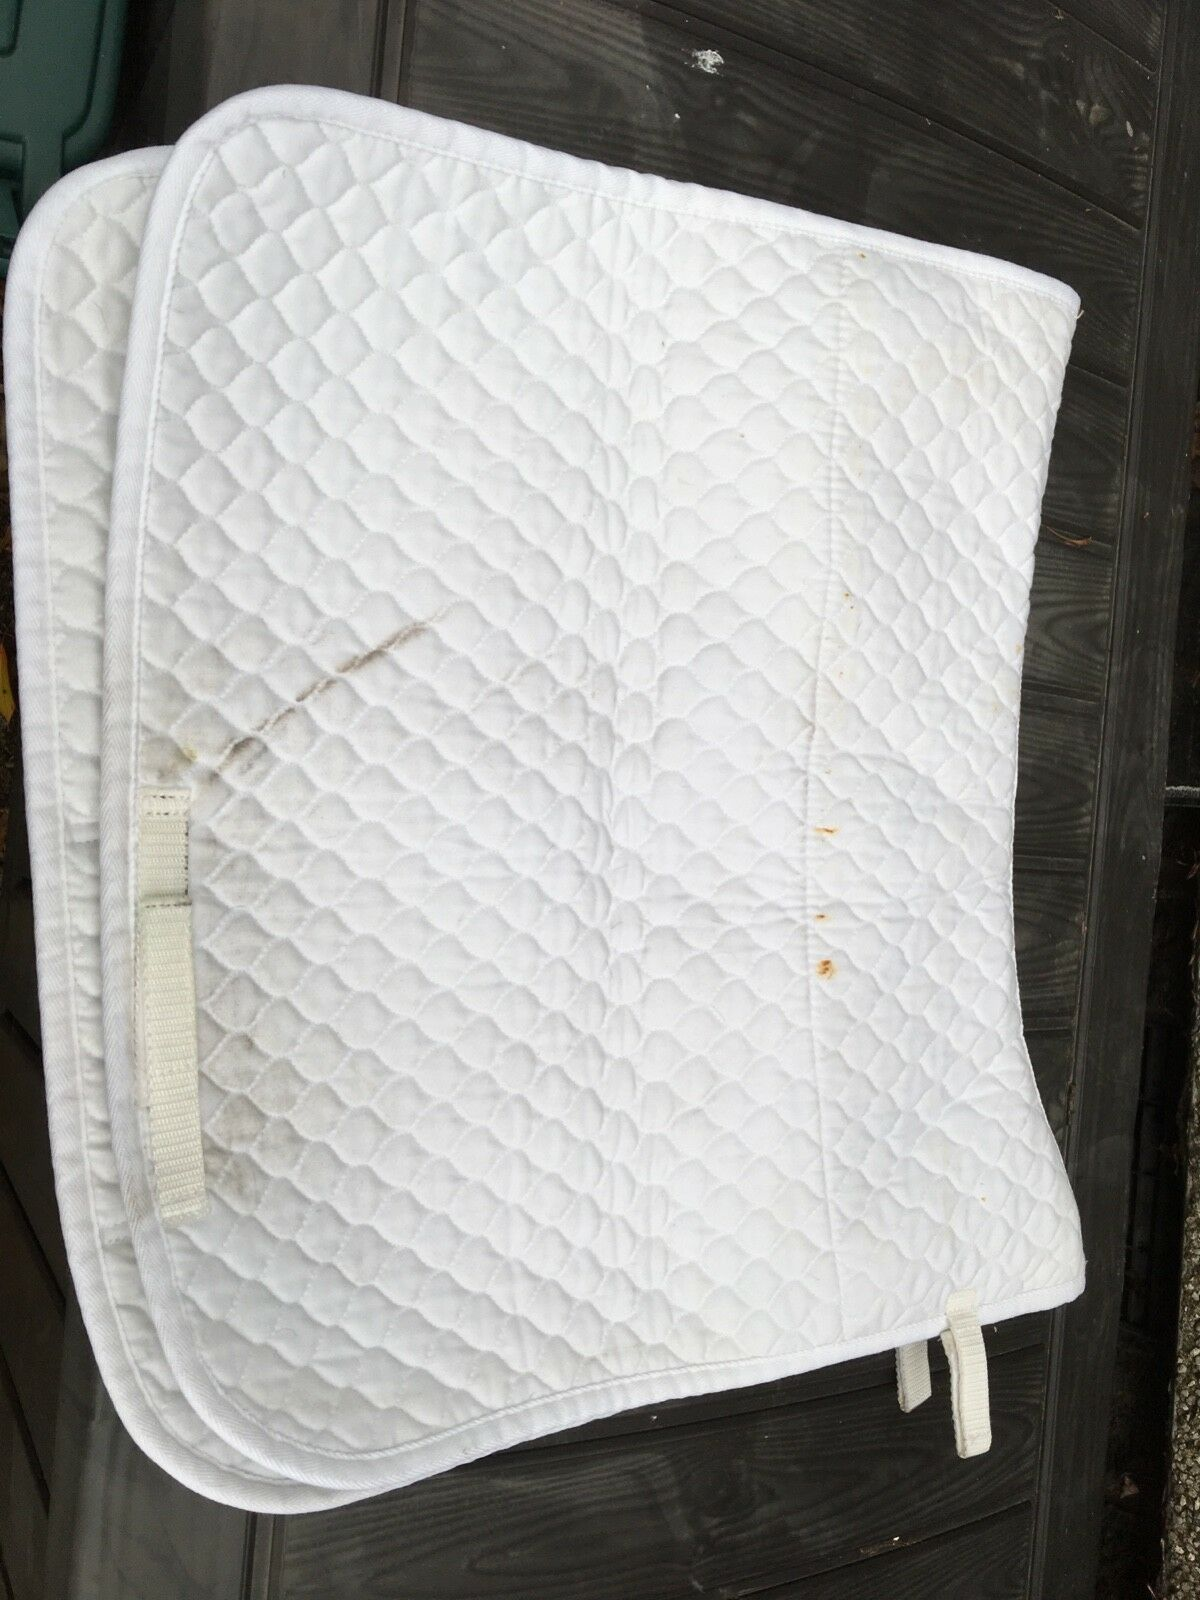 NuuMed Griffin Wool Lined Sheepskin Numnah Small Dressagd White Saddle Pad